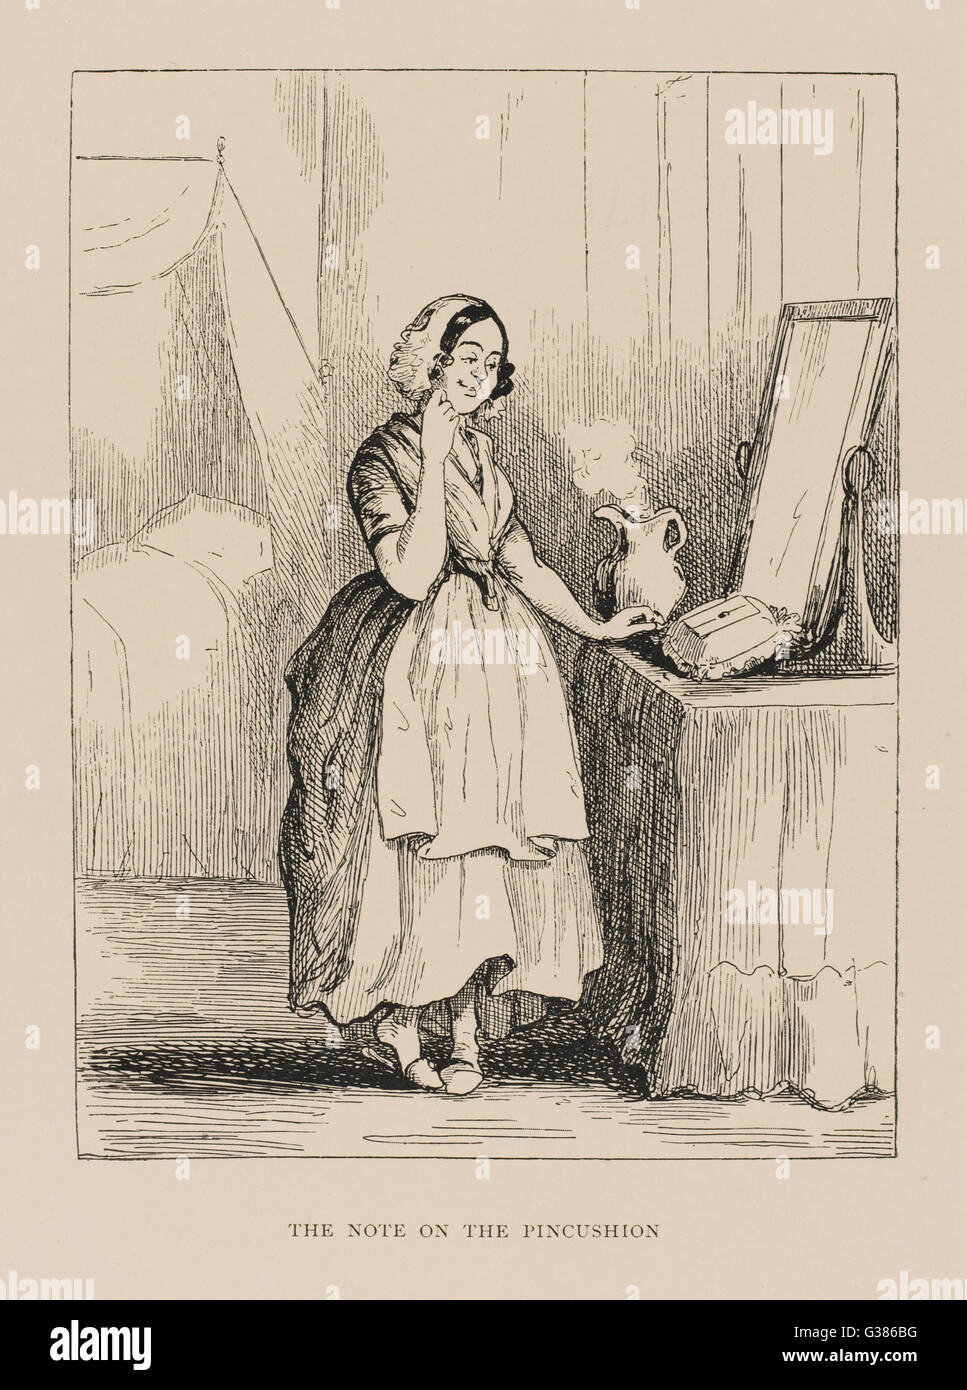 Betty discovers the note on  the pincushion.         Date: First published: 1848 - Stock Image